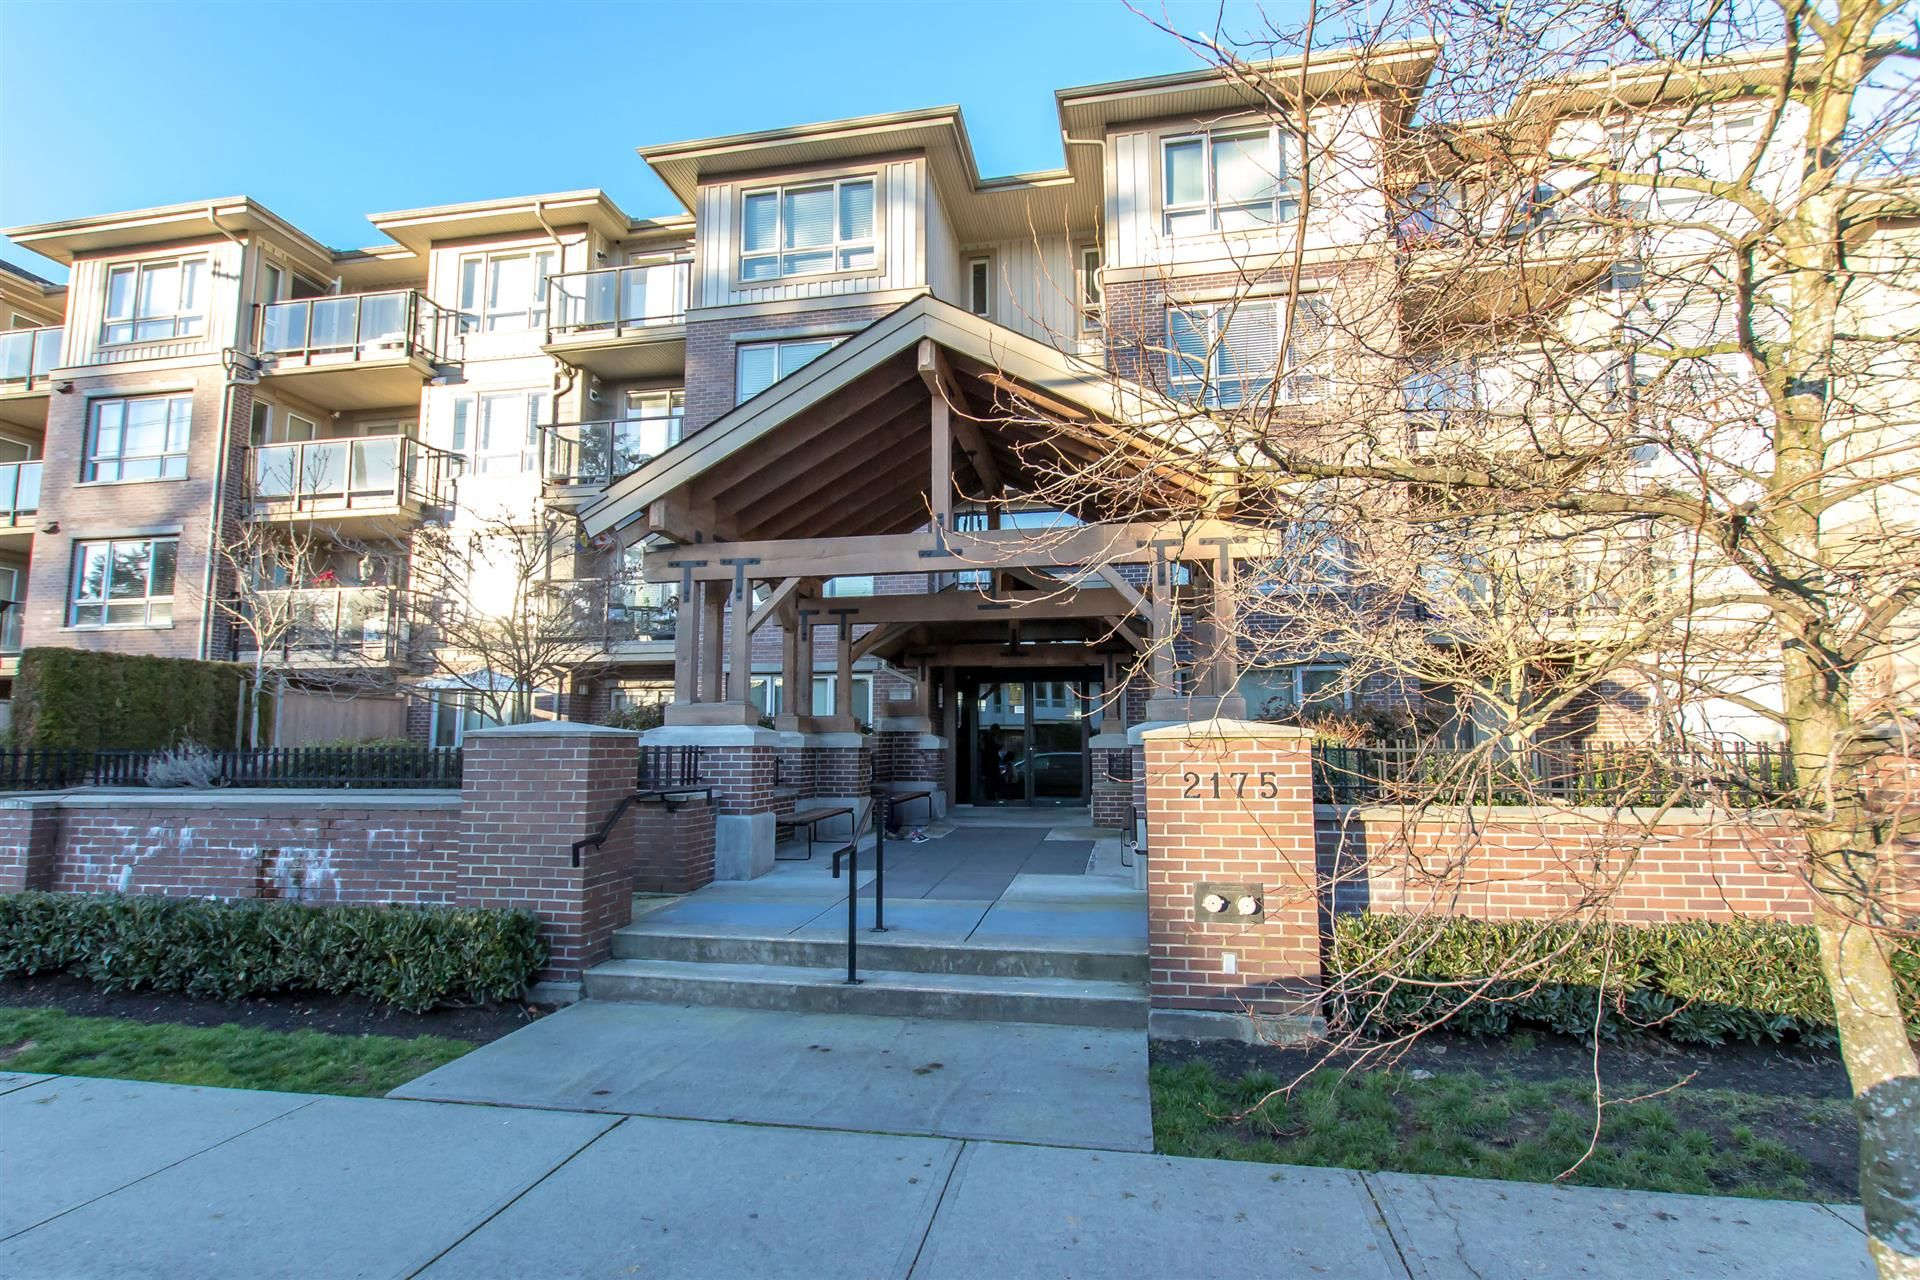 """Main Photo: 201 2175 FRASER Avenue in Port Coquitlam: Glenwood PQ Condo for sale in """"THE RESIDENCES ON SHAUGHNESSY"""" : MLS®# R2330328"""